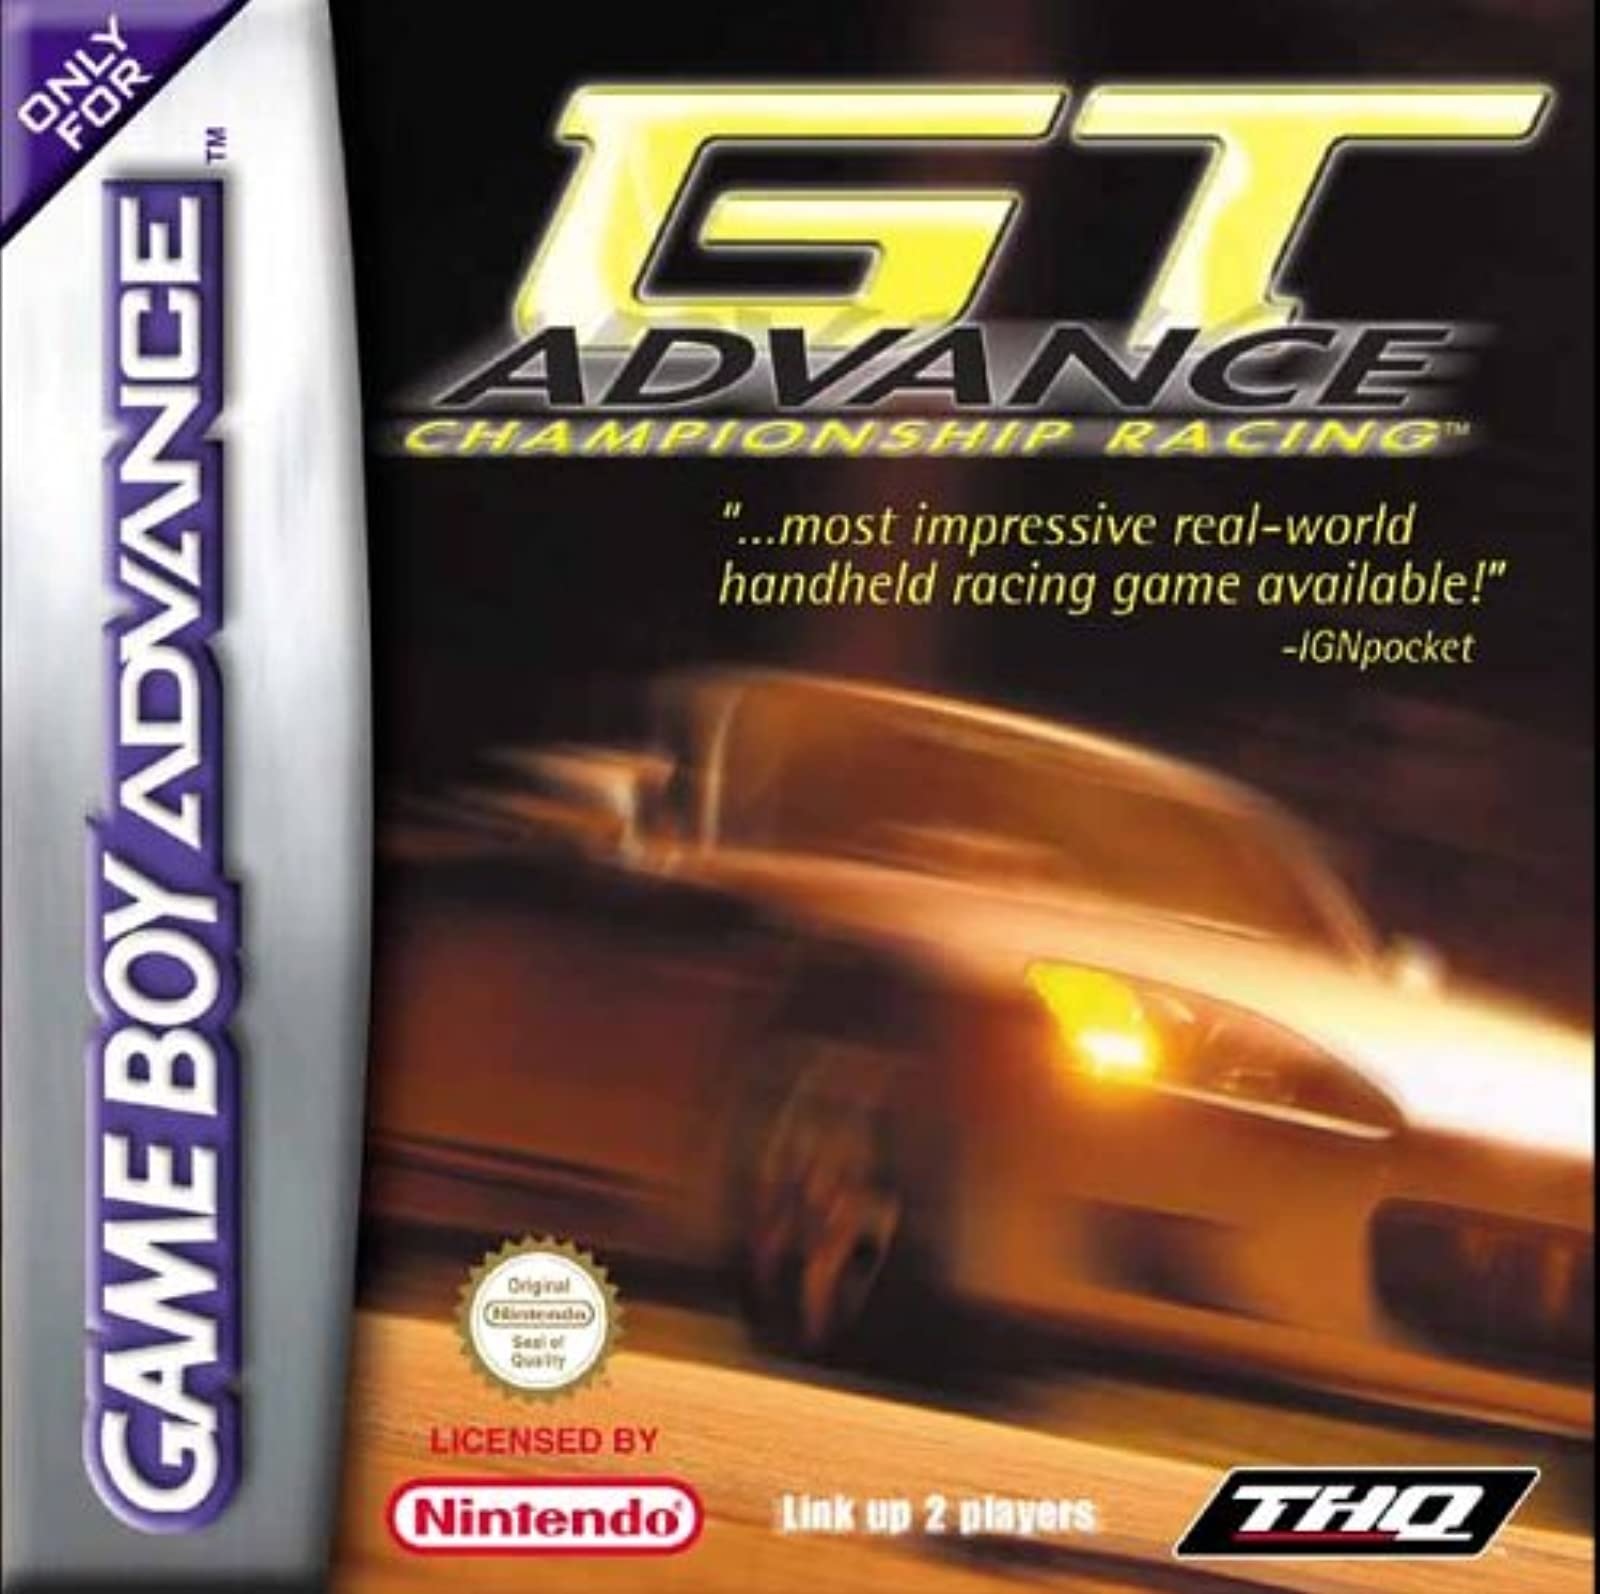 GT Advance Championship Racing GBA For GBA Gameboy Advance